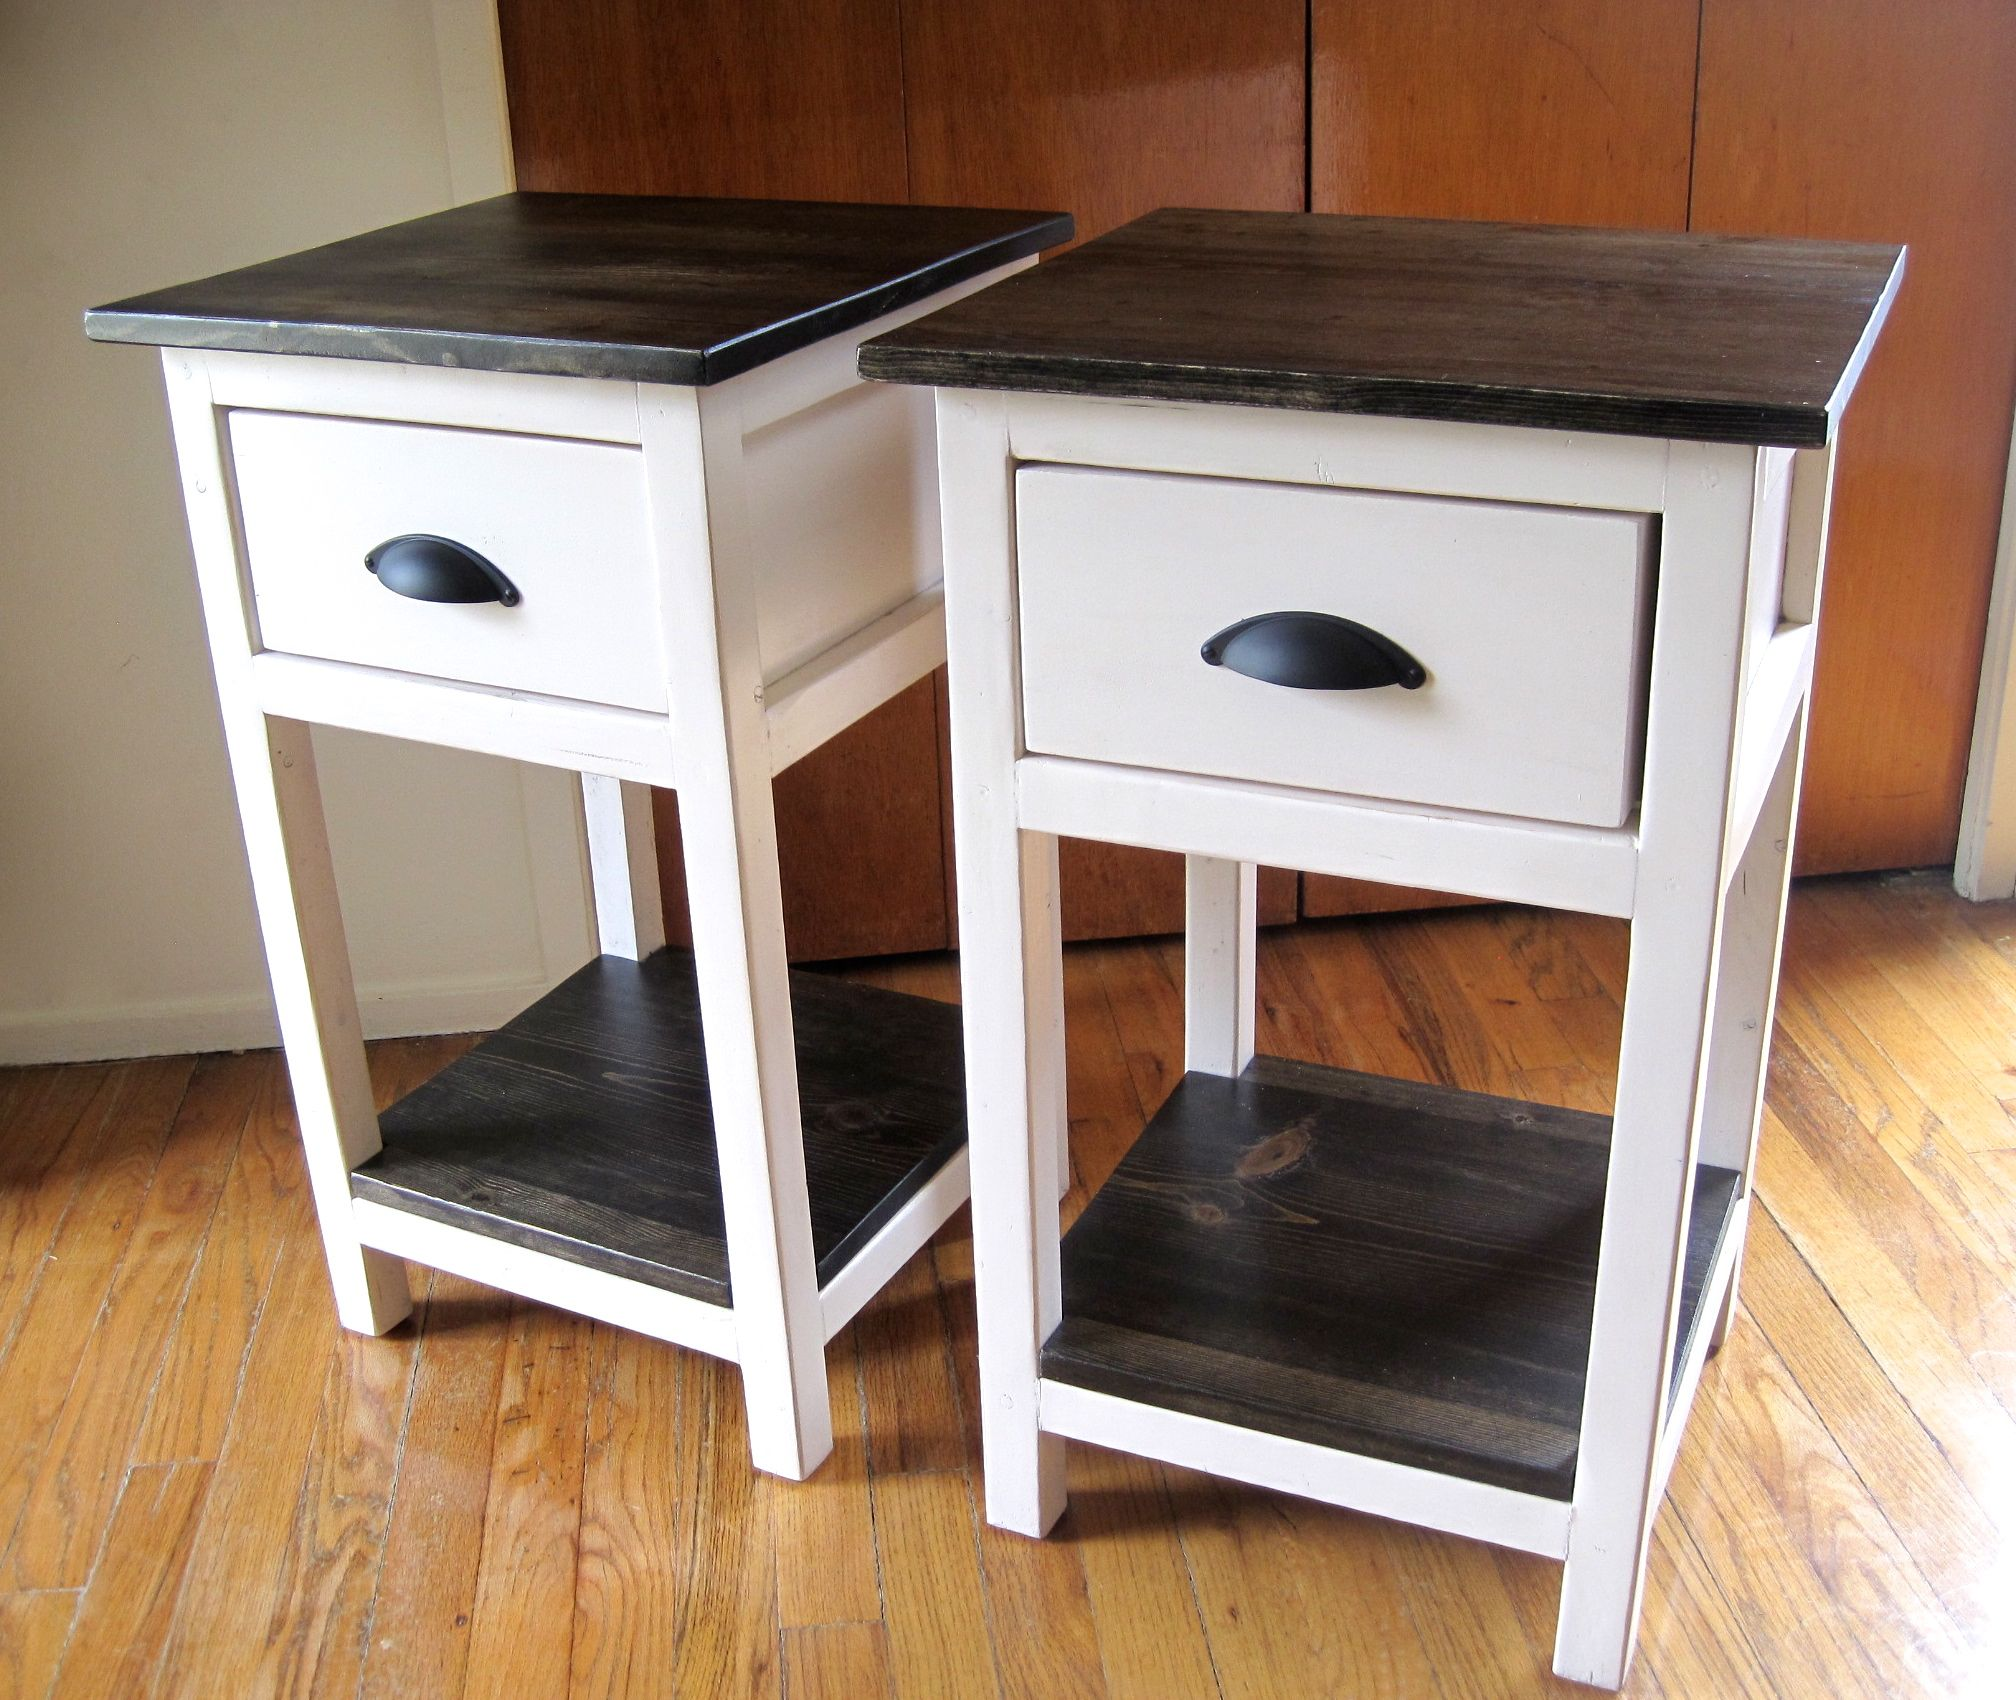 ana white build a mini farmhouse bedside table plans